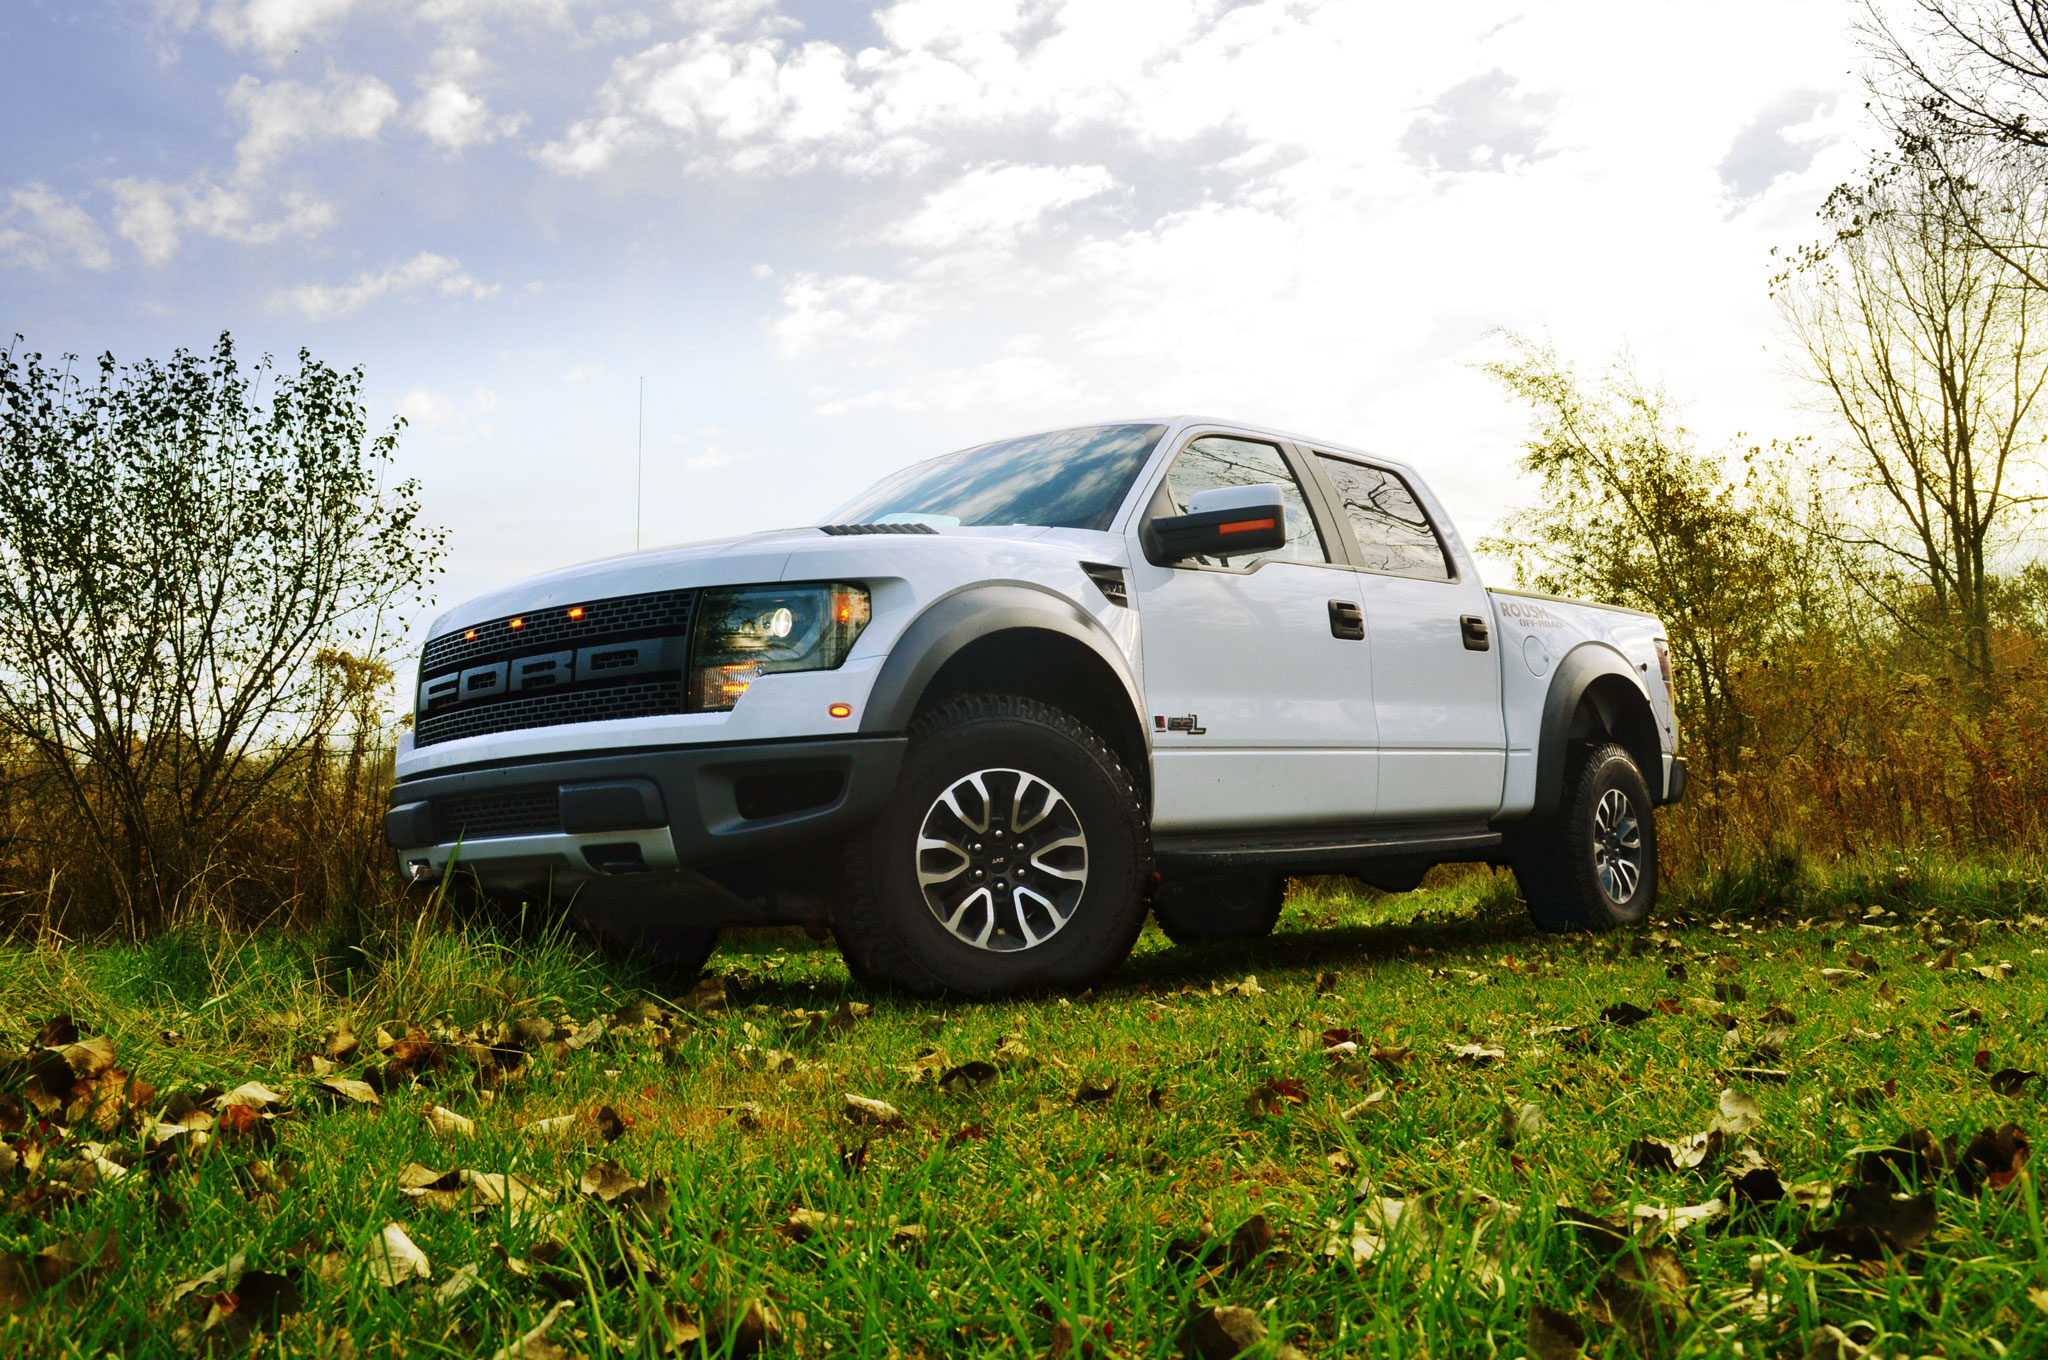 2014 Roush Ford F-150 SVT Raptor: Around the Block